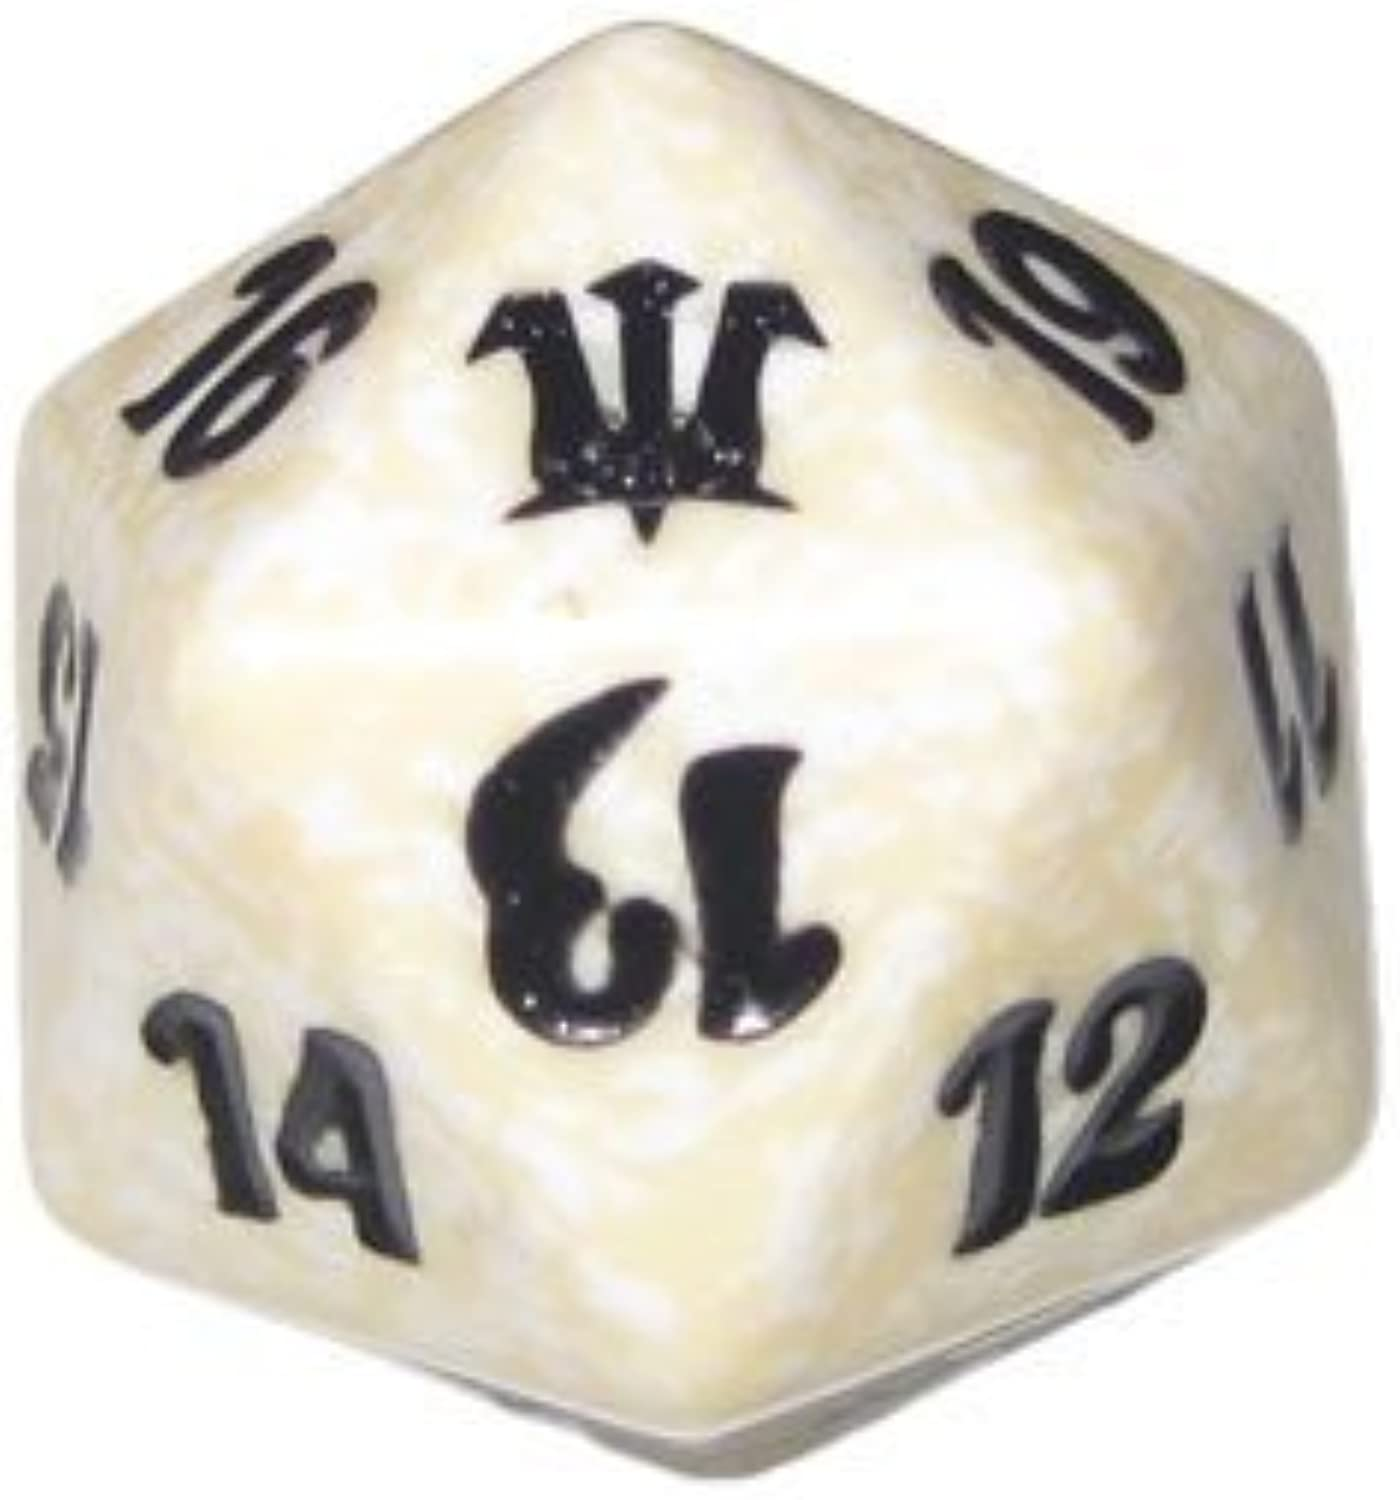 MTG Spindown D20 Life Counter - Innistrad Weiß by Magic  The Gathering